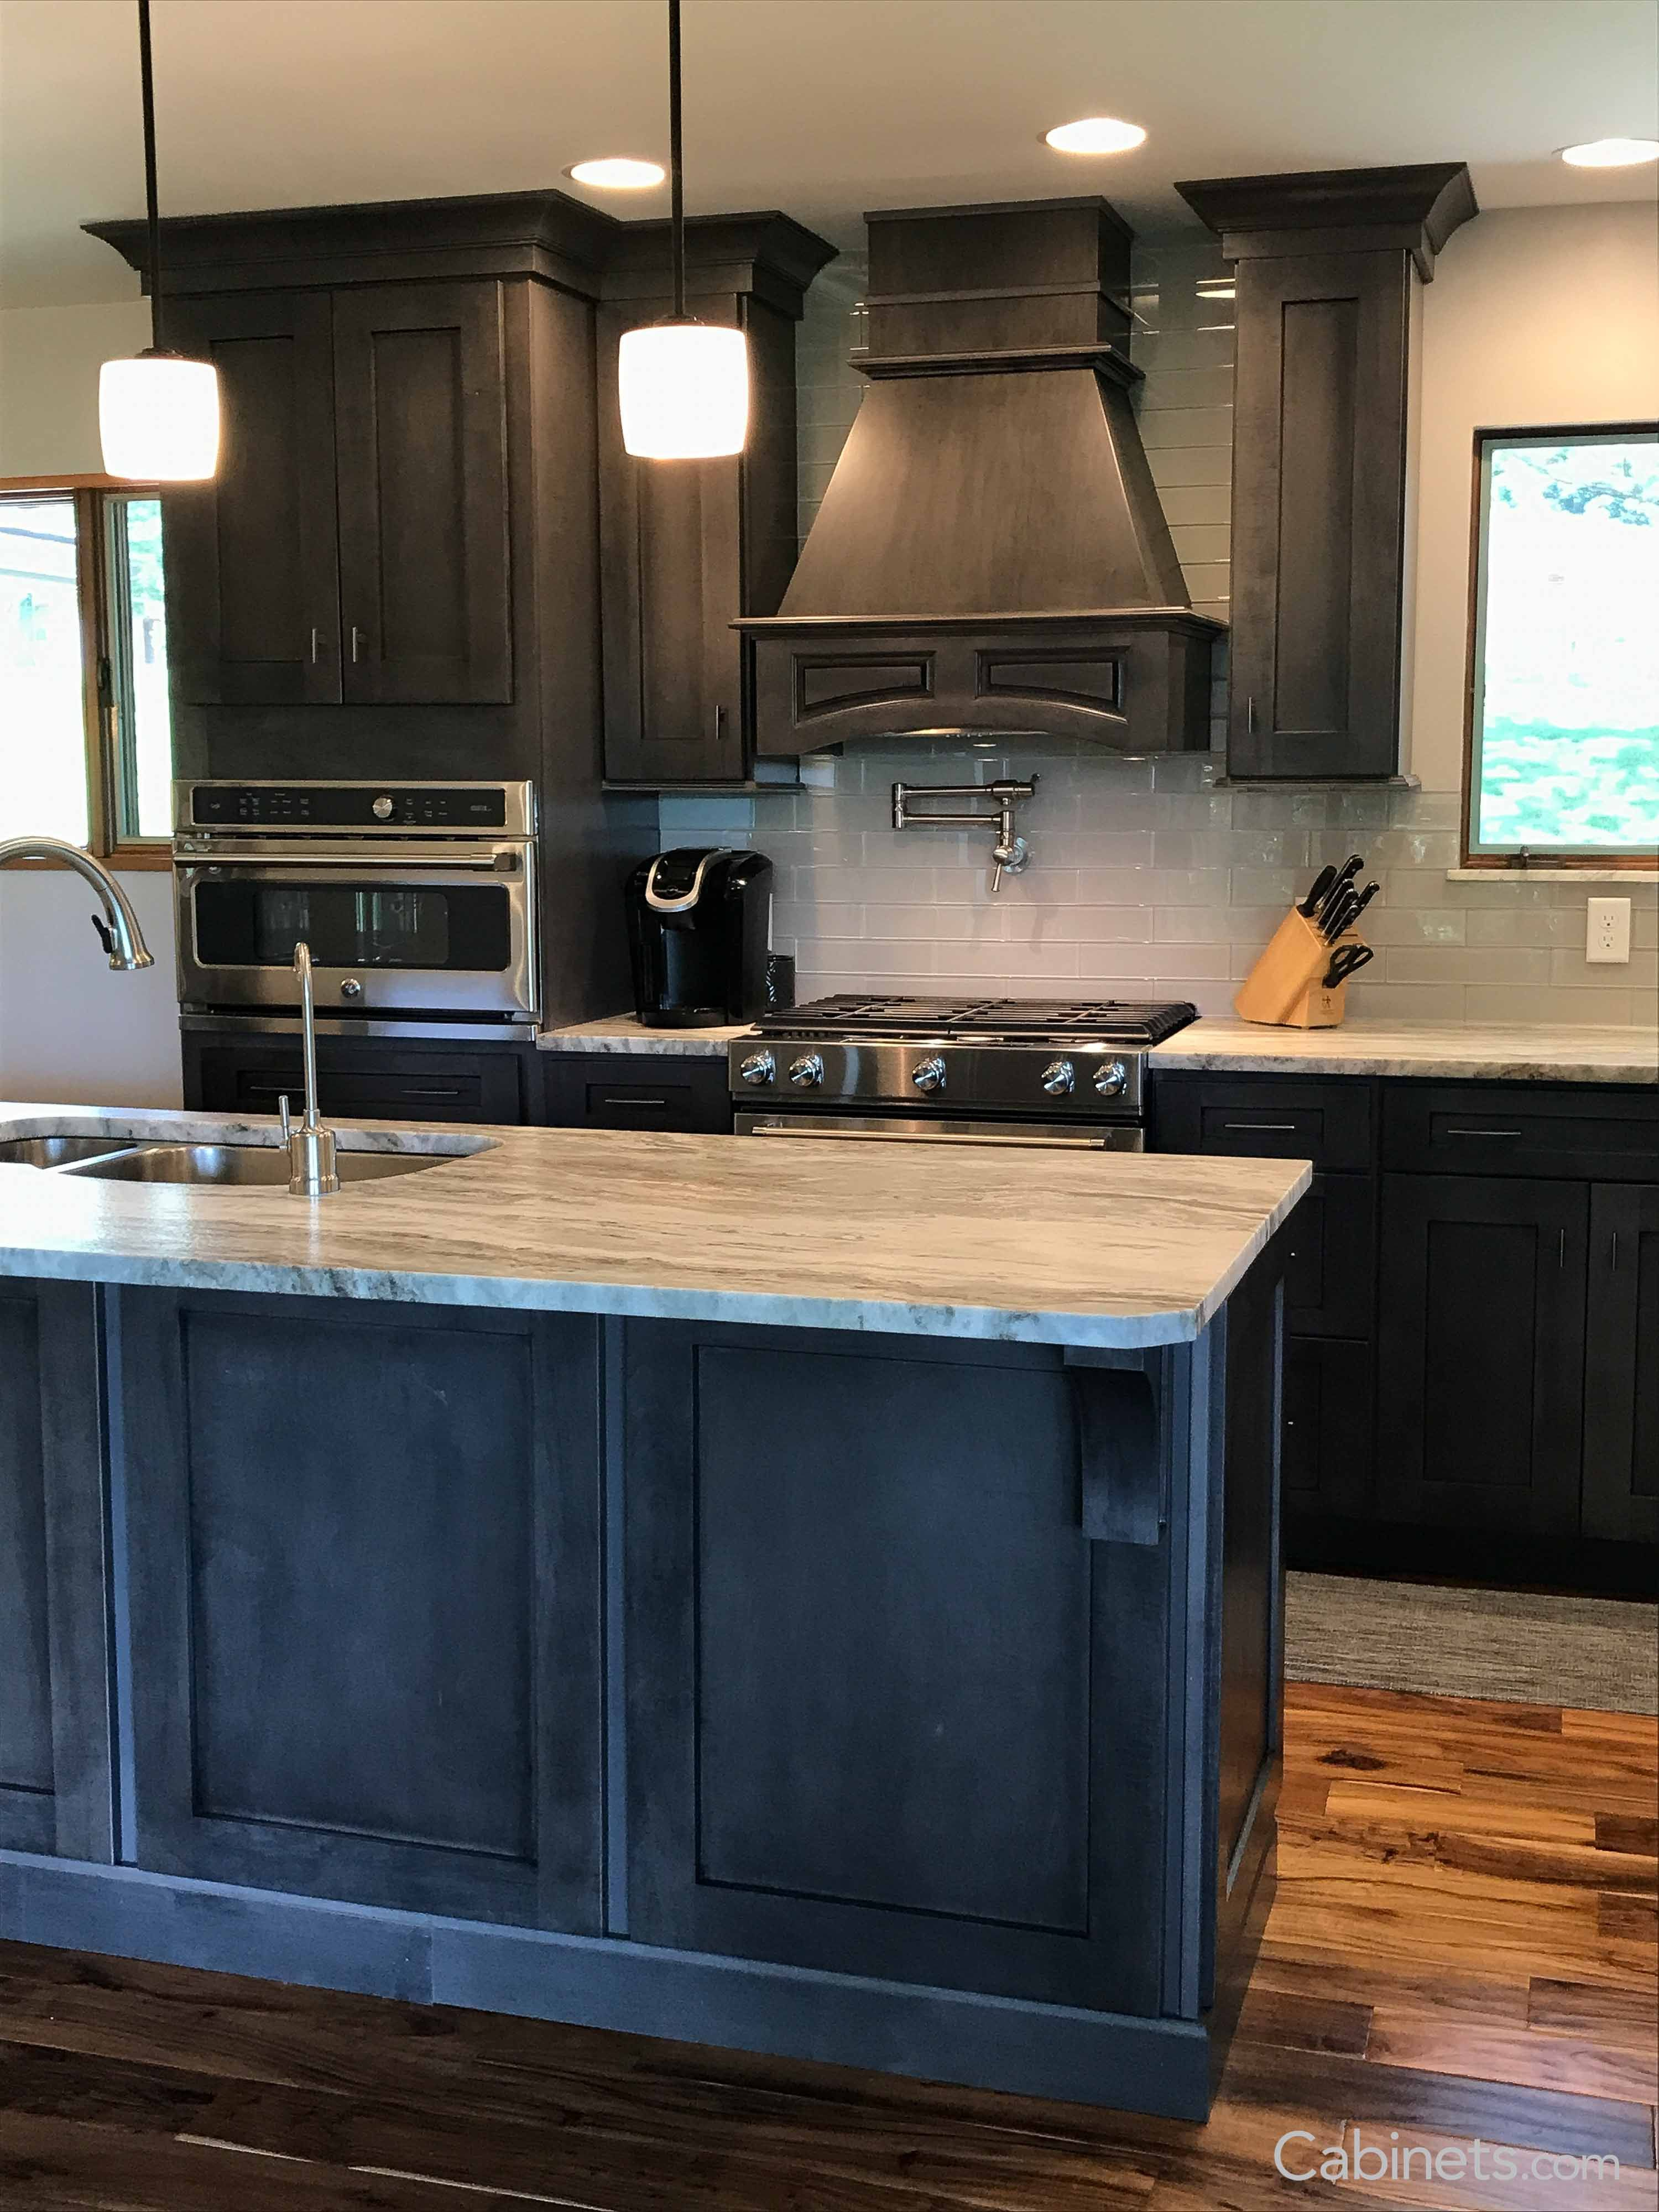 Kitchen Cabinets.com Inexpensive Table Sets Shaker Maple Slate Cabinets For Your New Style